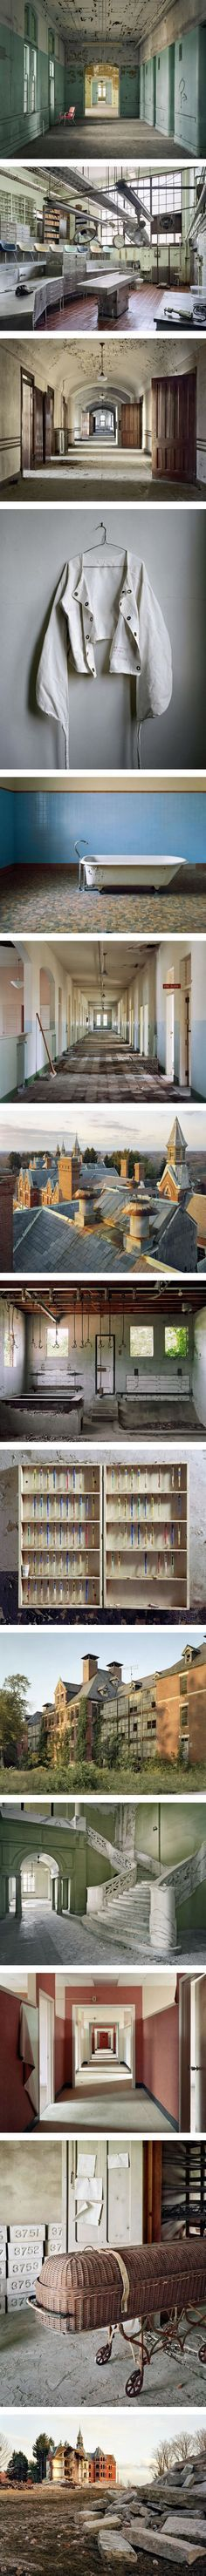 Photographer Documents Abandoned Mental Hospitals (By Christopher Payne)